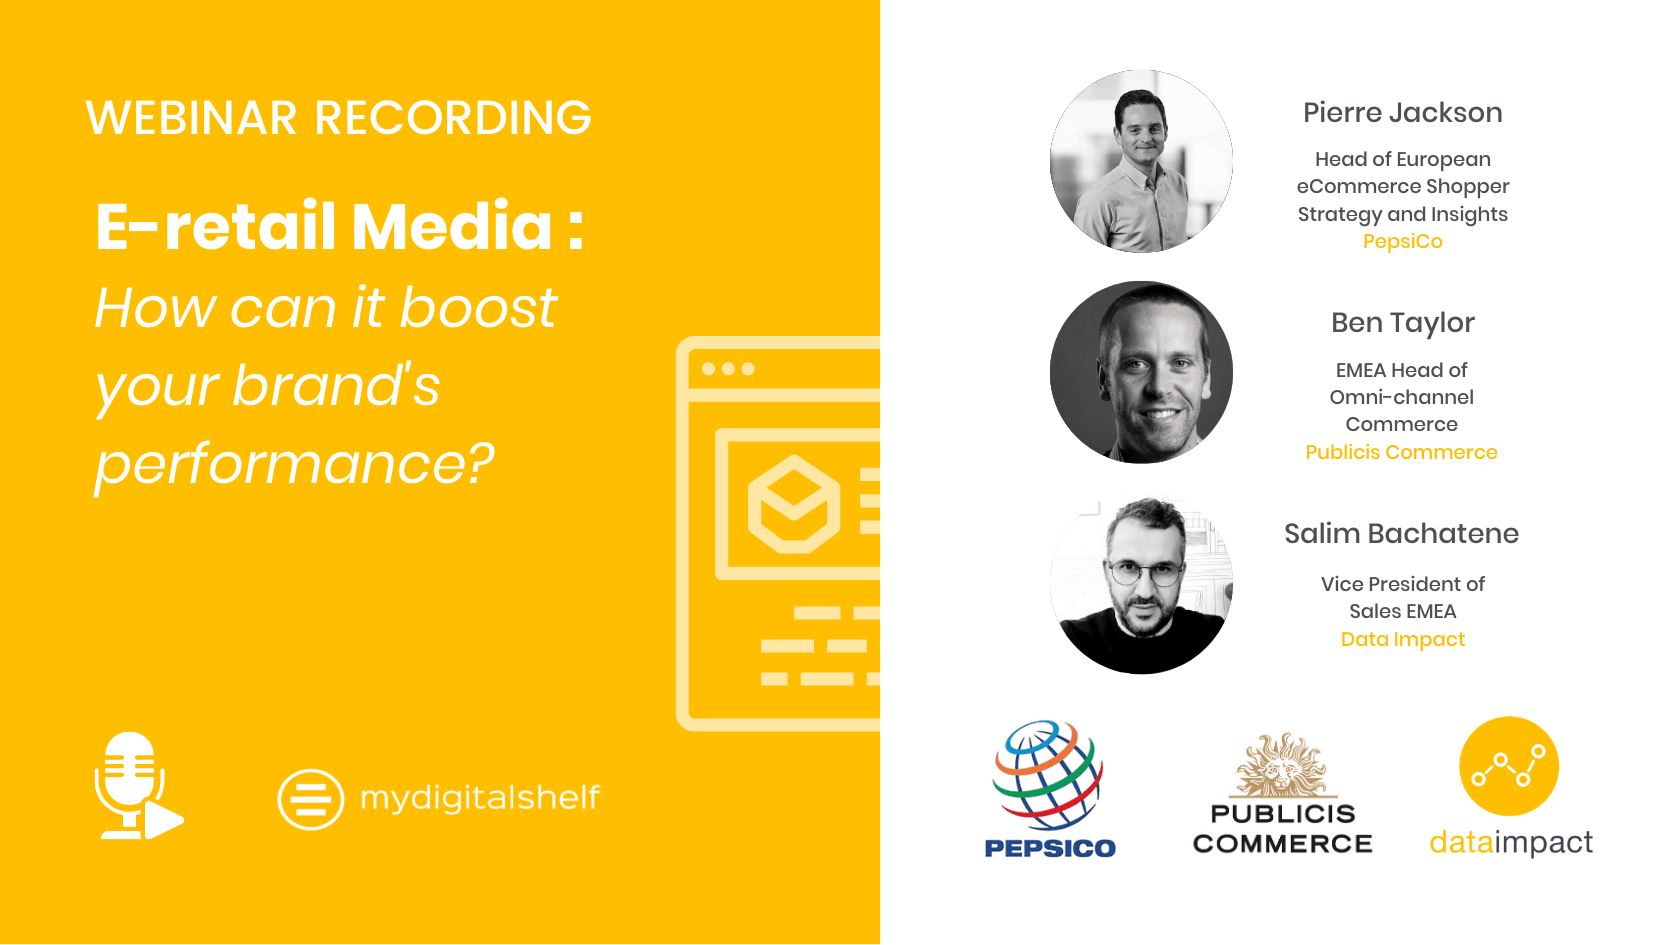 Webinar-PepsiCo-Publicis Commerce-Data Impact-E-retail-performance-Omnichannel